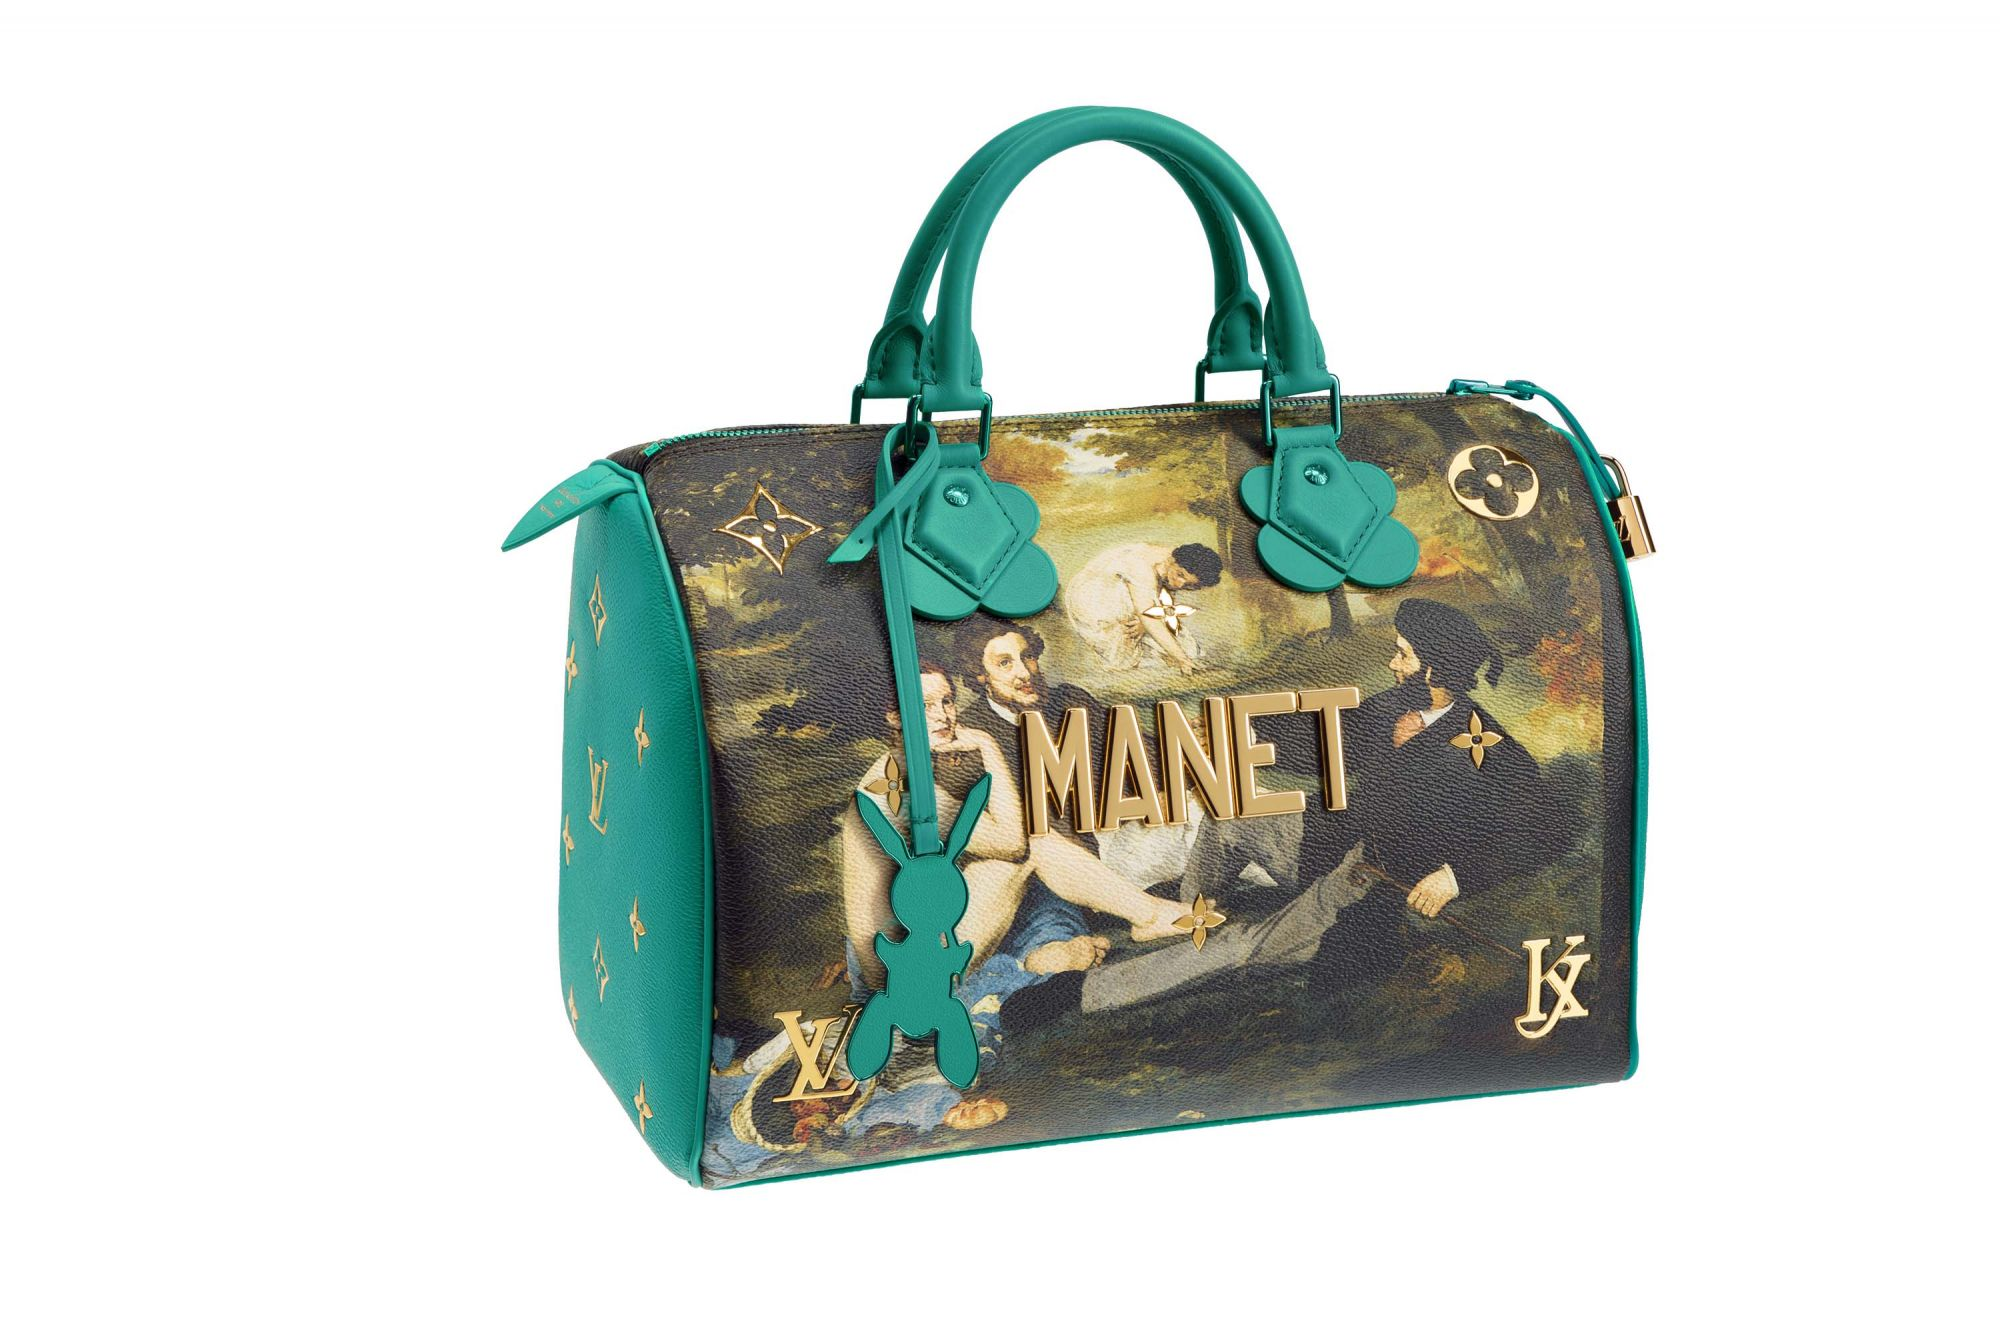 These Louis Vuitton x Jeff Koons Bags Are Literal Works Of Art